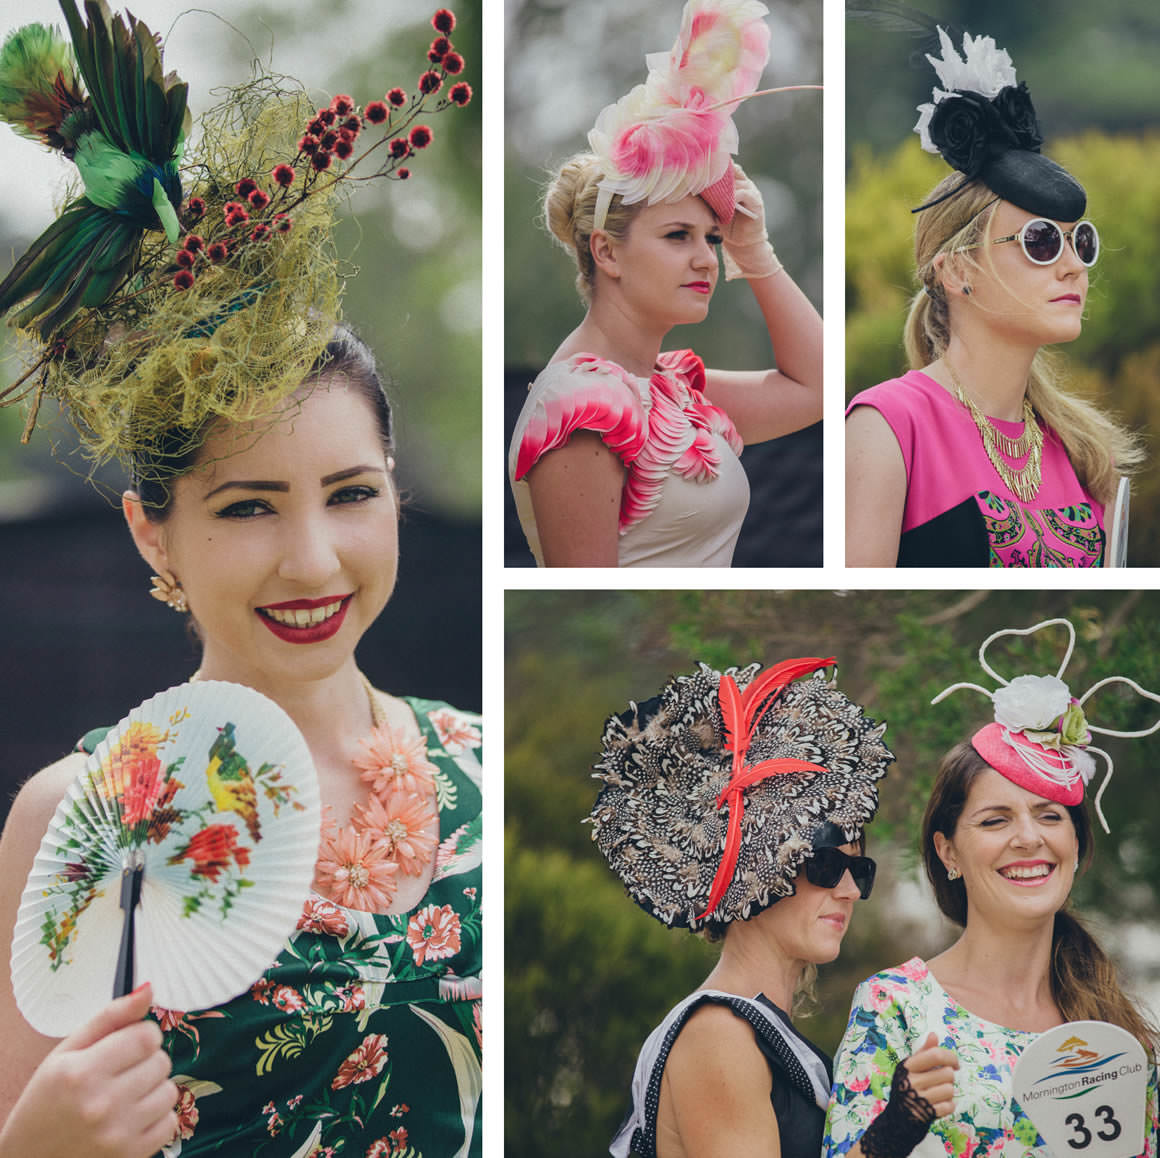 mornington 2014 - fashions on the field